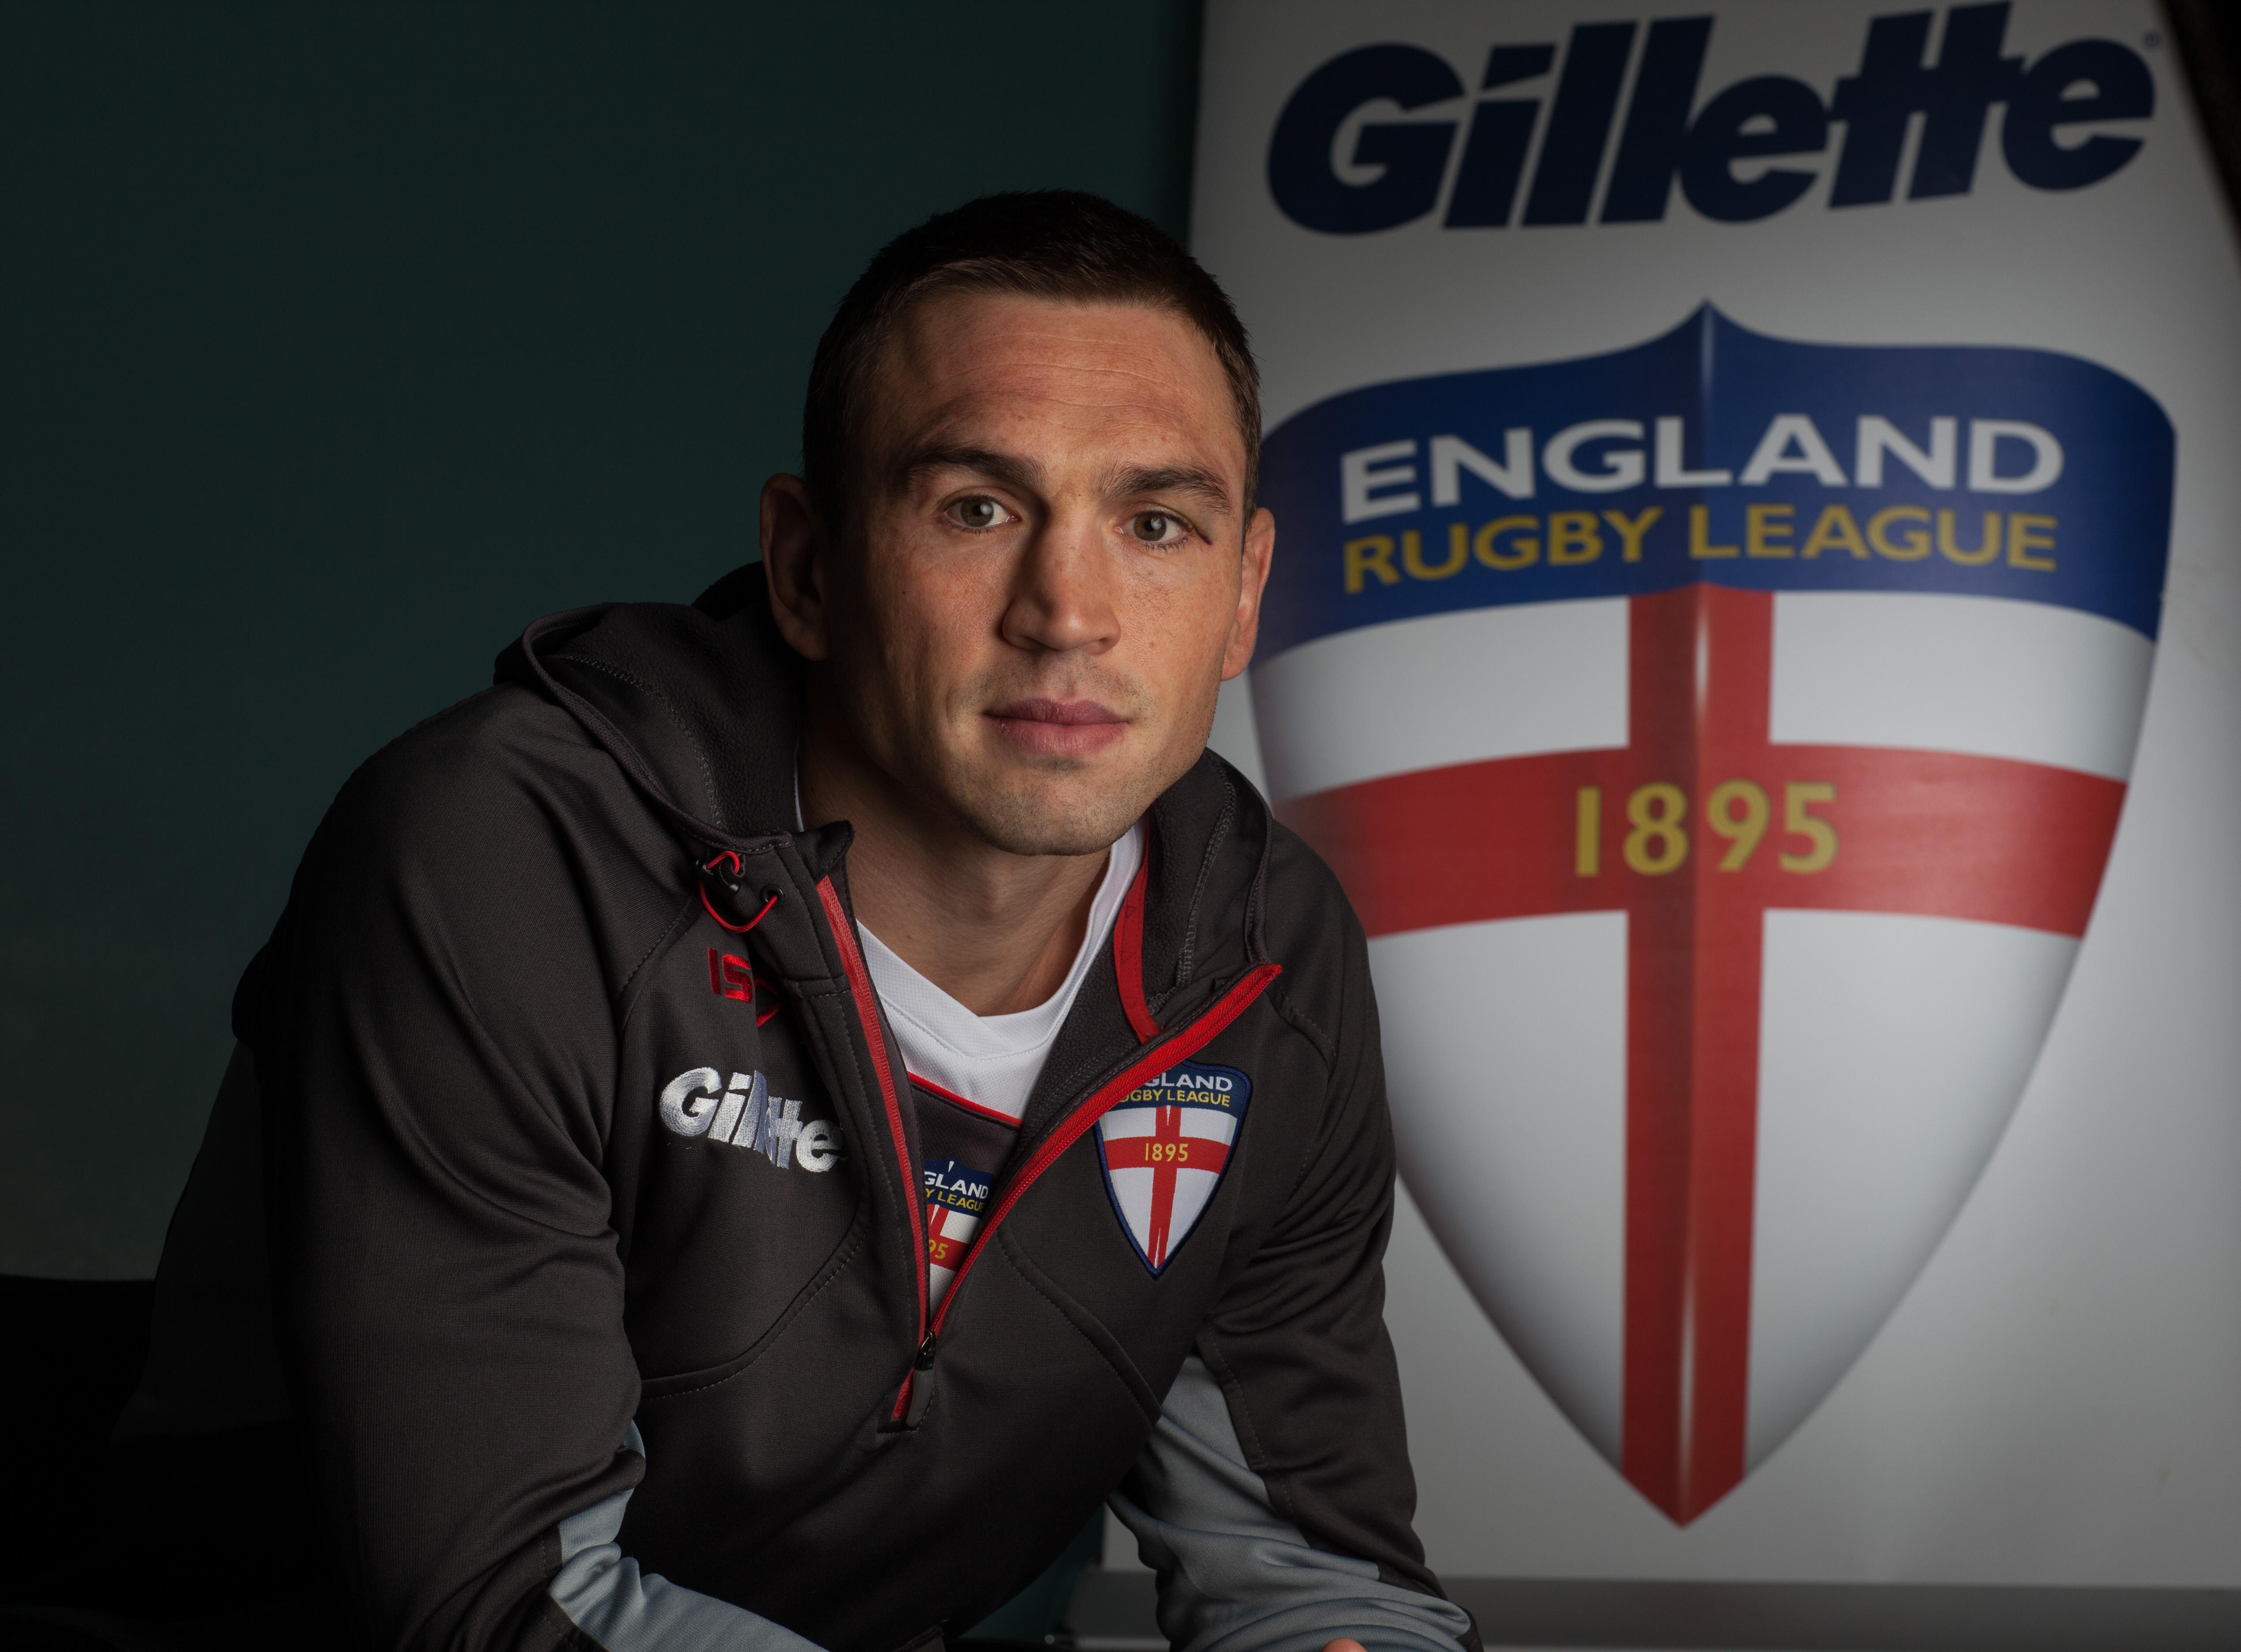 Kevin Sinfield believes the NRL plan for international rugby league is disappointing